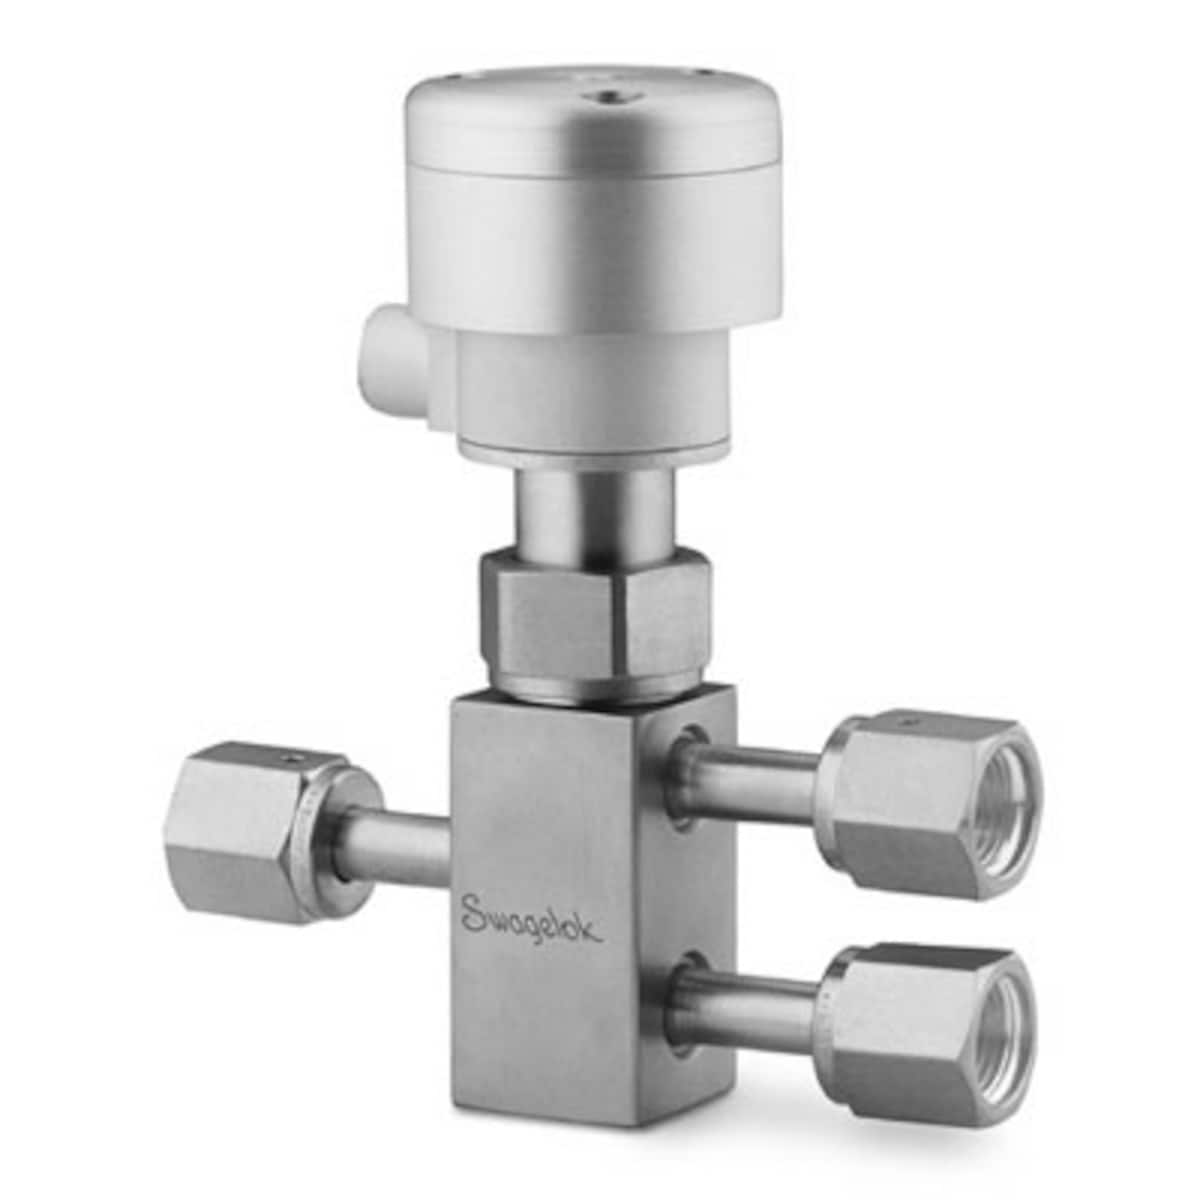 Bellows-Sealed Valves for Switching Service, BY Series